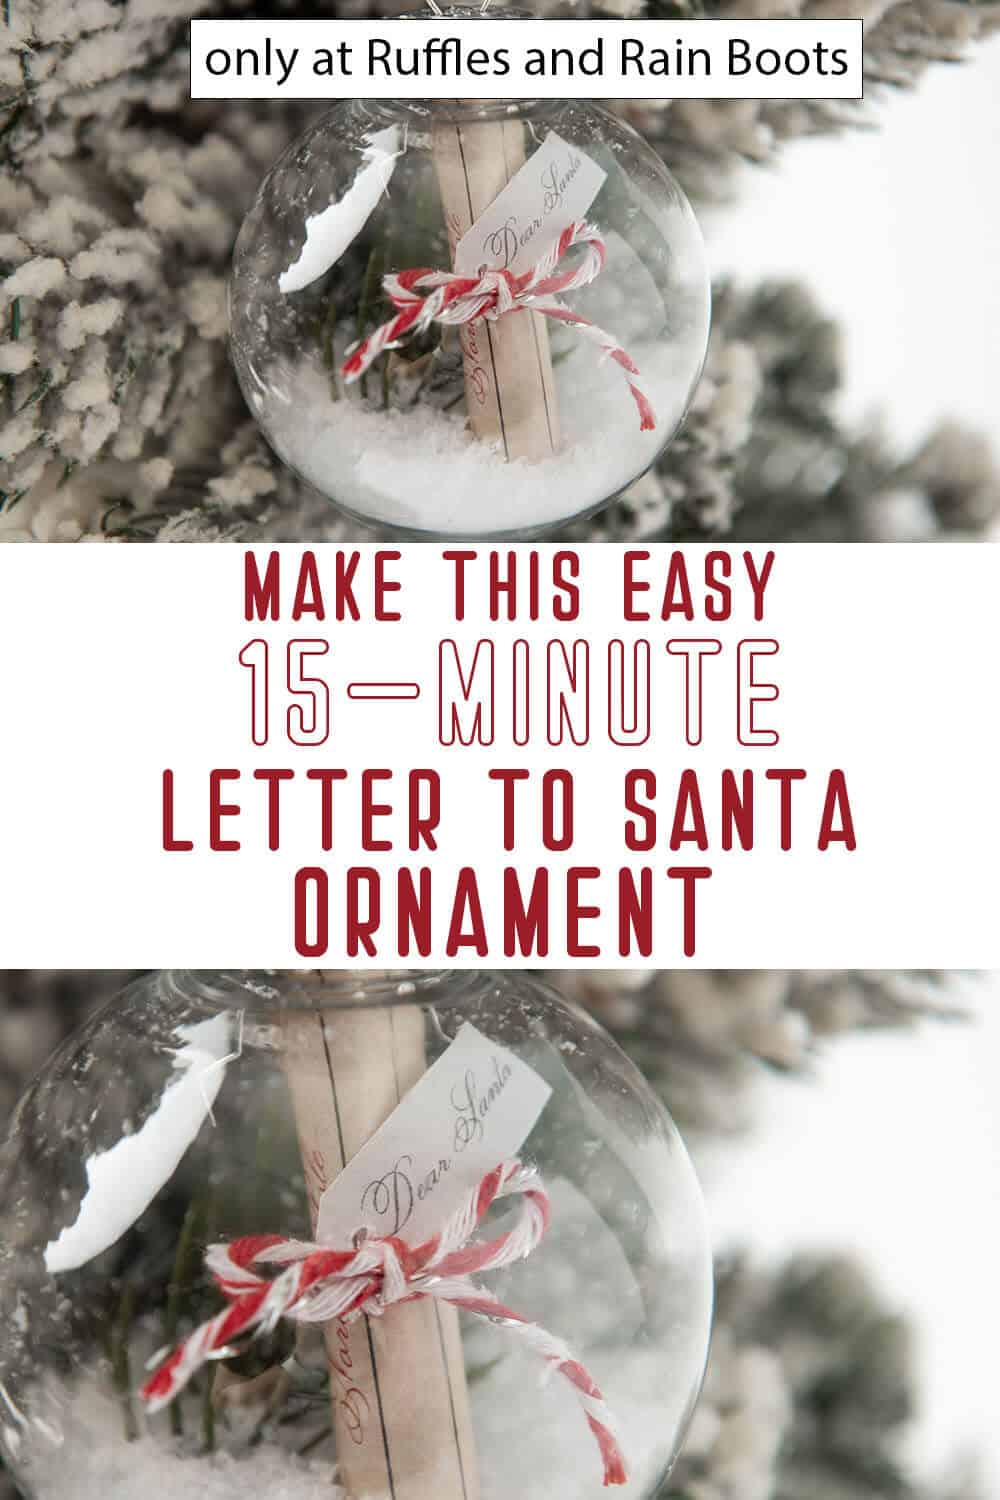 photo collage of quick diy ornament with a santa letter inside with text which reads make this easy 15-minute letter to santa ornament